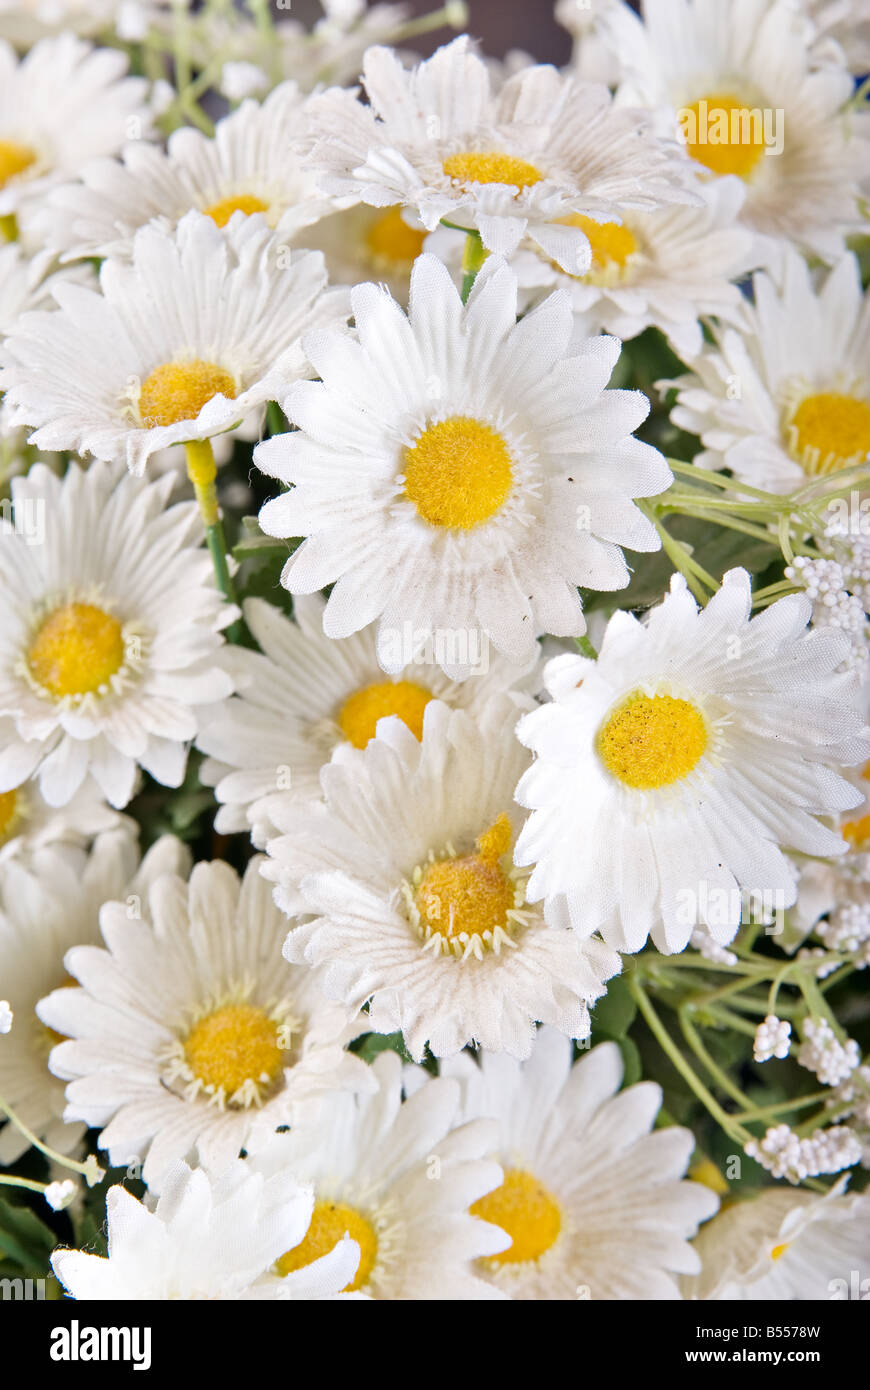 Great Image Of Some White Silk Daisy Flowers Stock Photo 20399145